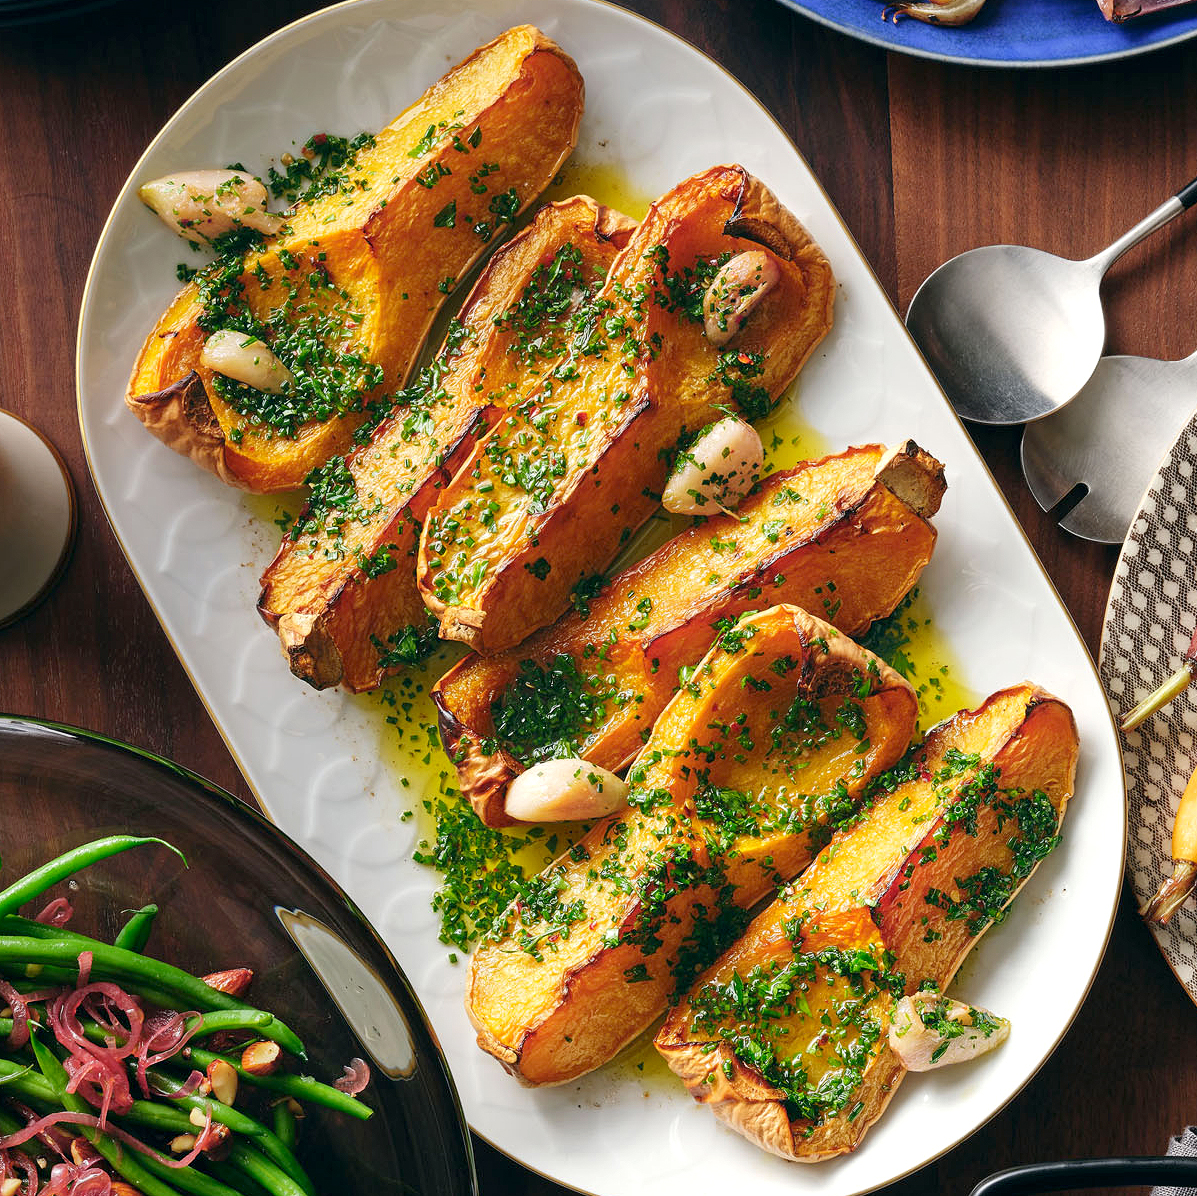 Roasted Squash with Garlic Confit and Herb Oil